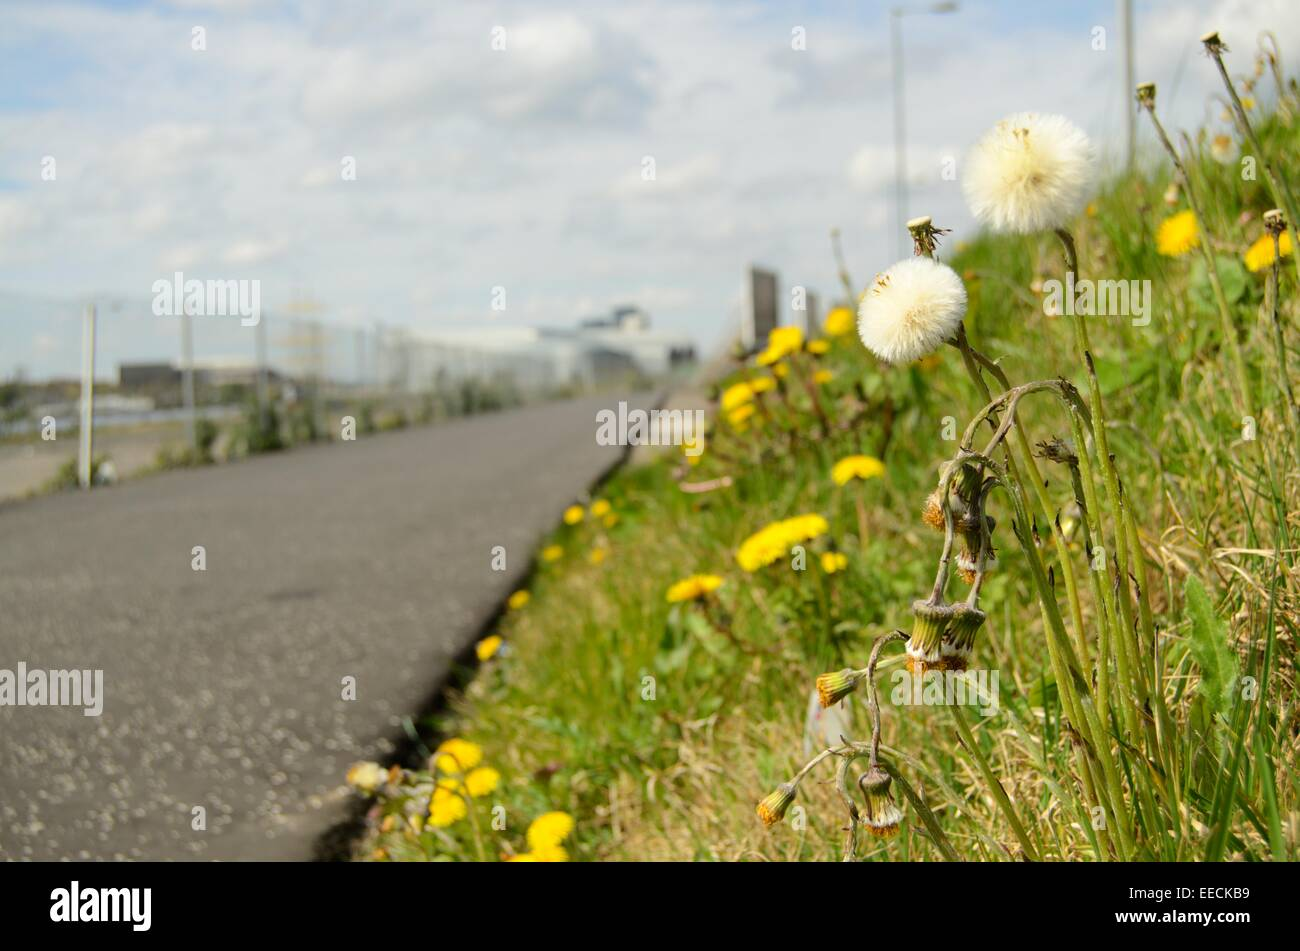 Dandelions on grass verge below the Clydeside expressway in Partick in Glasgow, Scotland - Stock Image